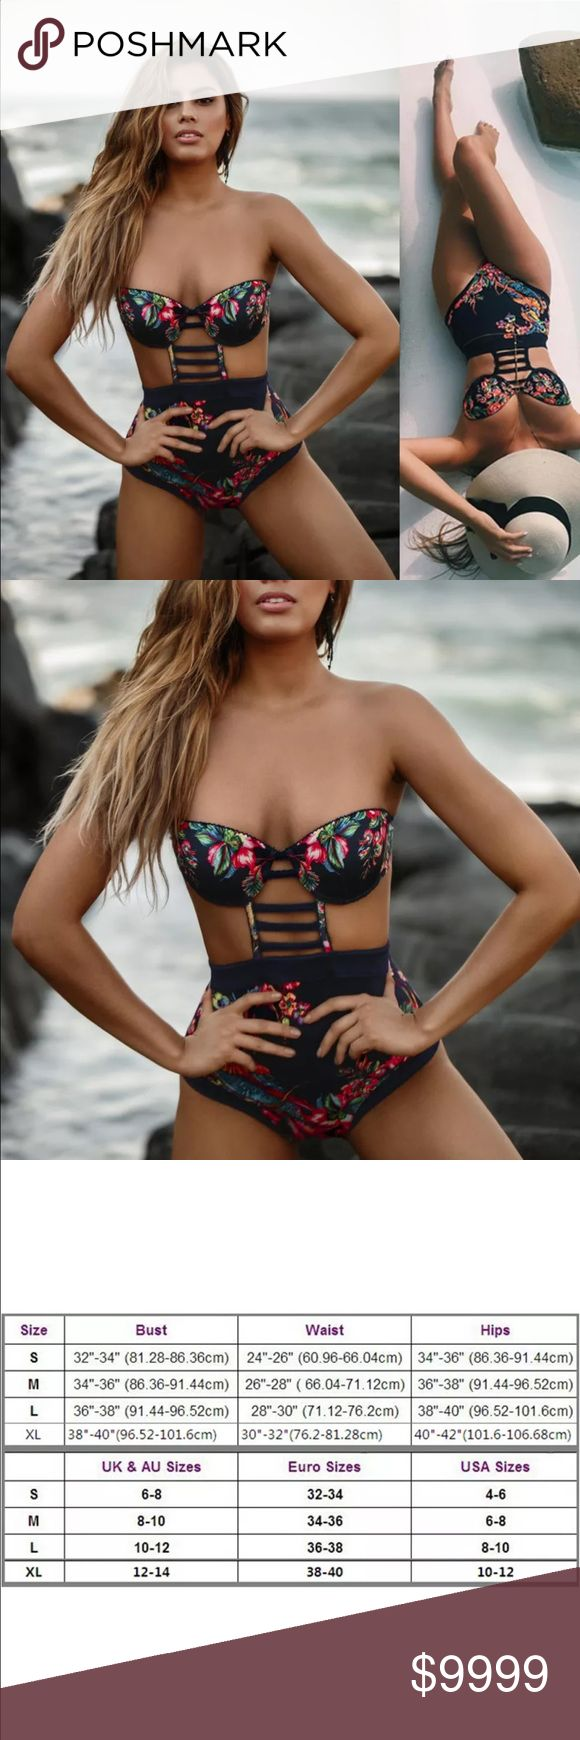 • Strapless Tropical Cut out Monokini • Strapless Tropical Cut out Monokini • Color deep blue not black • Pretty Floral print & high waist make this sexy yet feminine. Cut outs add some edge. Summer/Spring 2017 Swim Trends /Vegas / Pool / Beach / Party / Cruise / Resortwear ❤️Please note: straps are not shown in pic but are included & are detachable. Slight maker defect: some of the straps have partially open seams- easy stitch fix- price reduced to reflect it❤️ Swim One Pieces